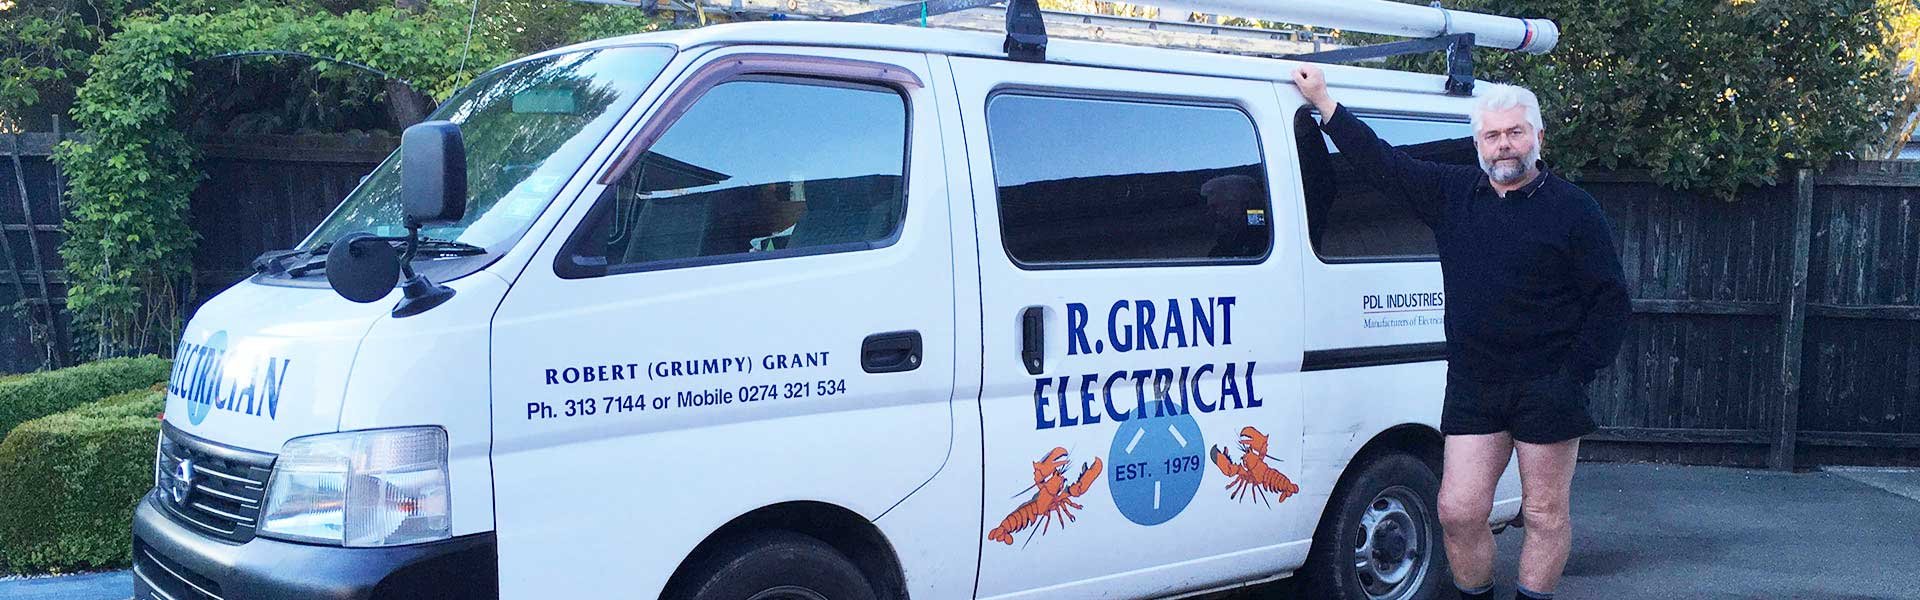 rgrant electrical